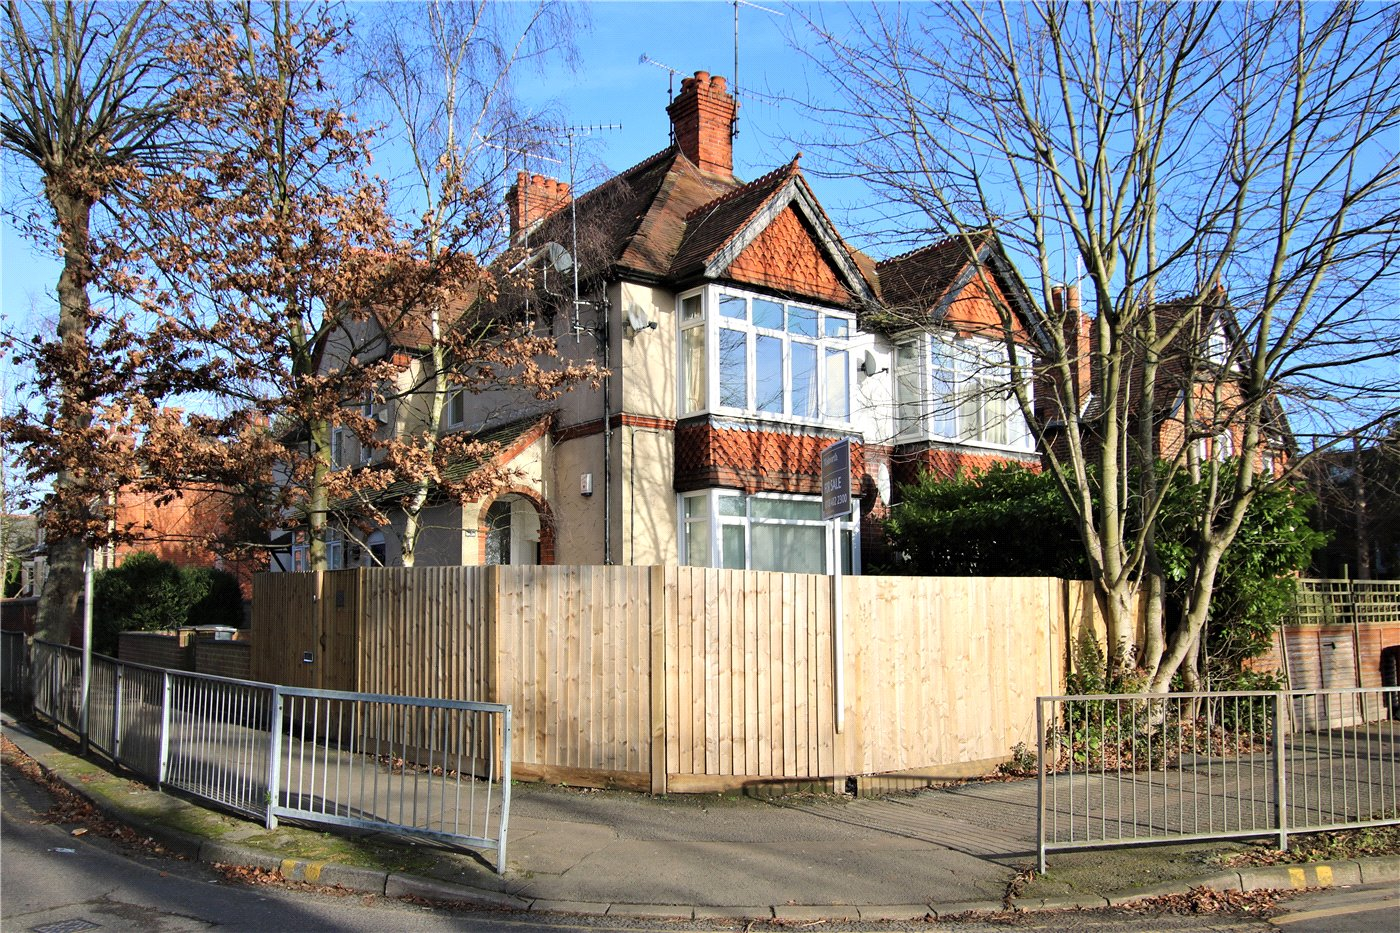 1 Bedroom Flat for sale in Tilehurst Road, Reading, Berkshire, RG30